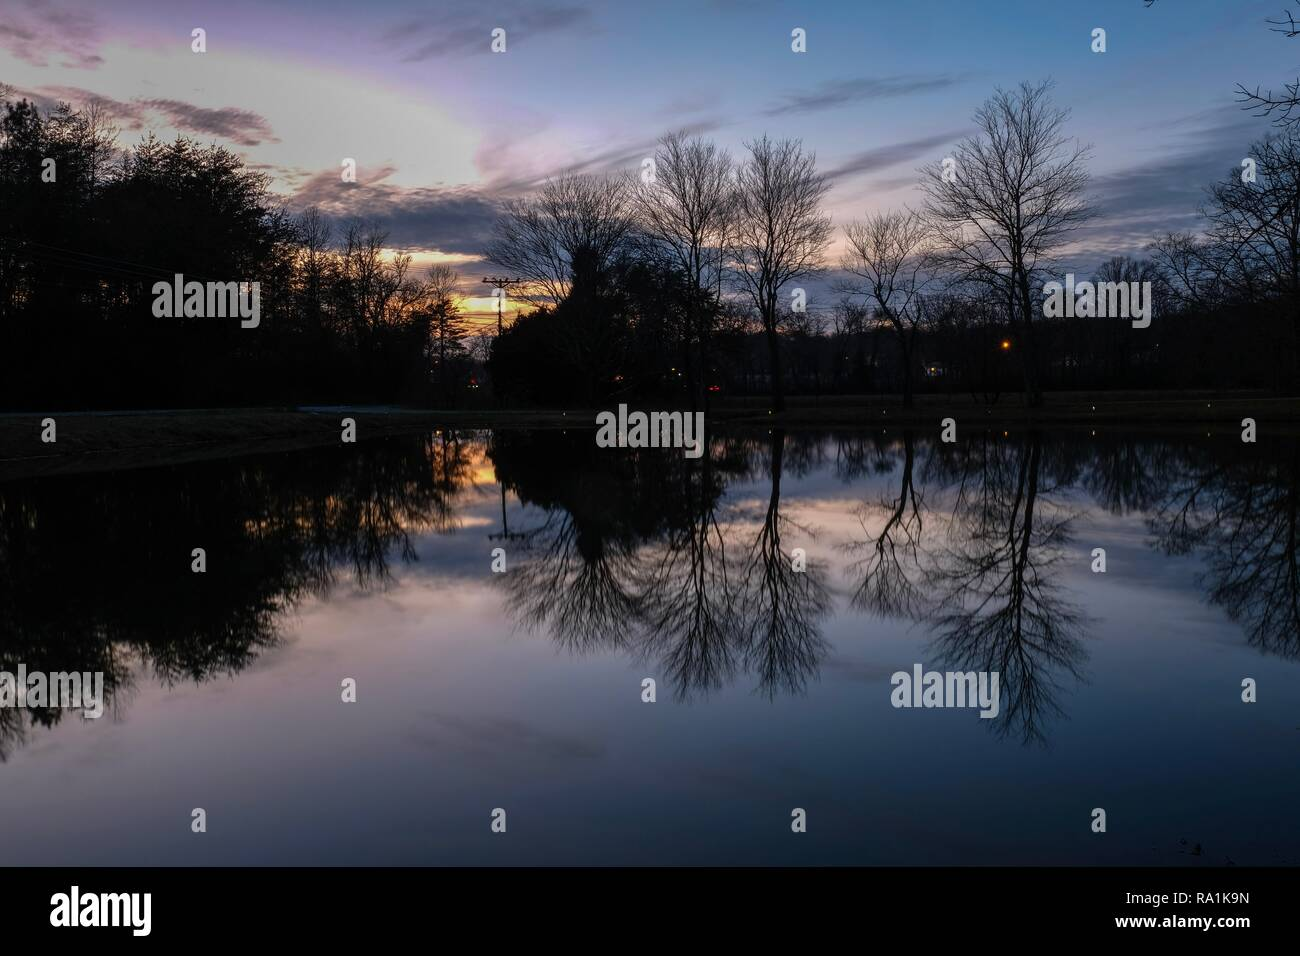 Mirror rejections on the placid surface of a pond at sunset in Tracy City, Tennessee - Stock Image